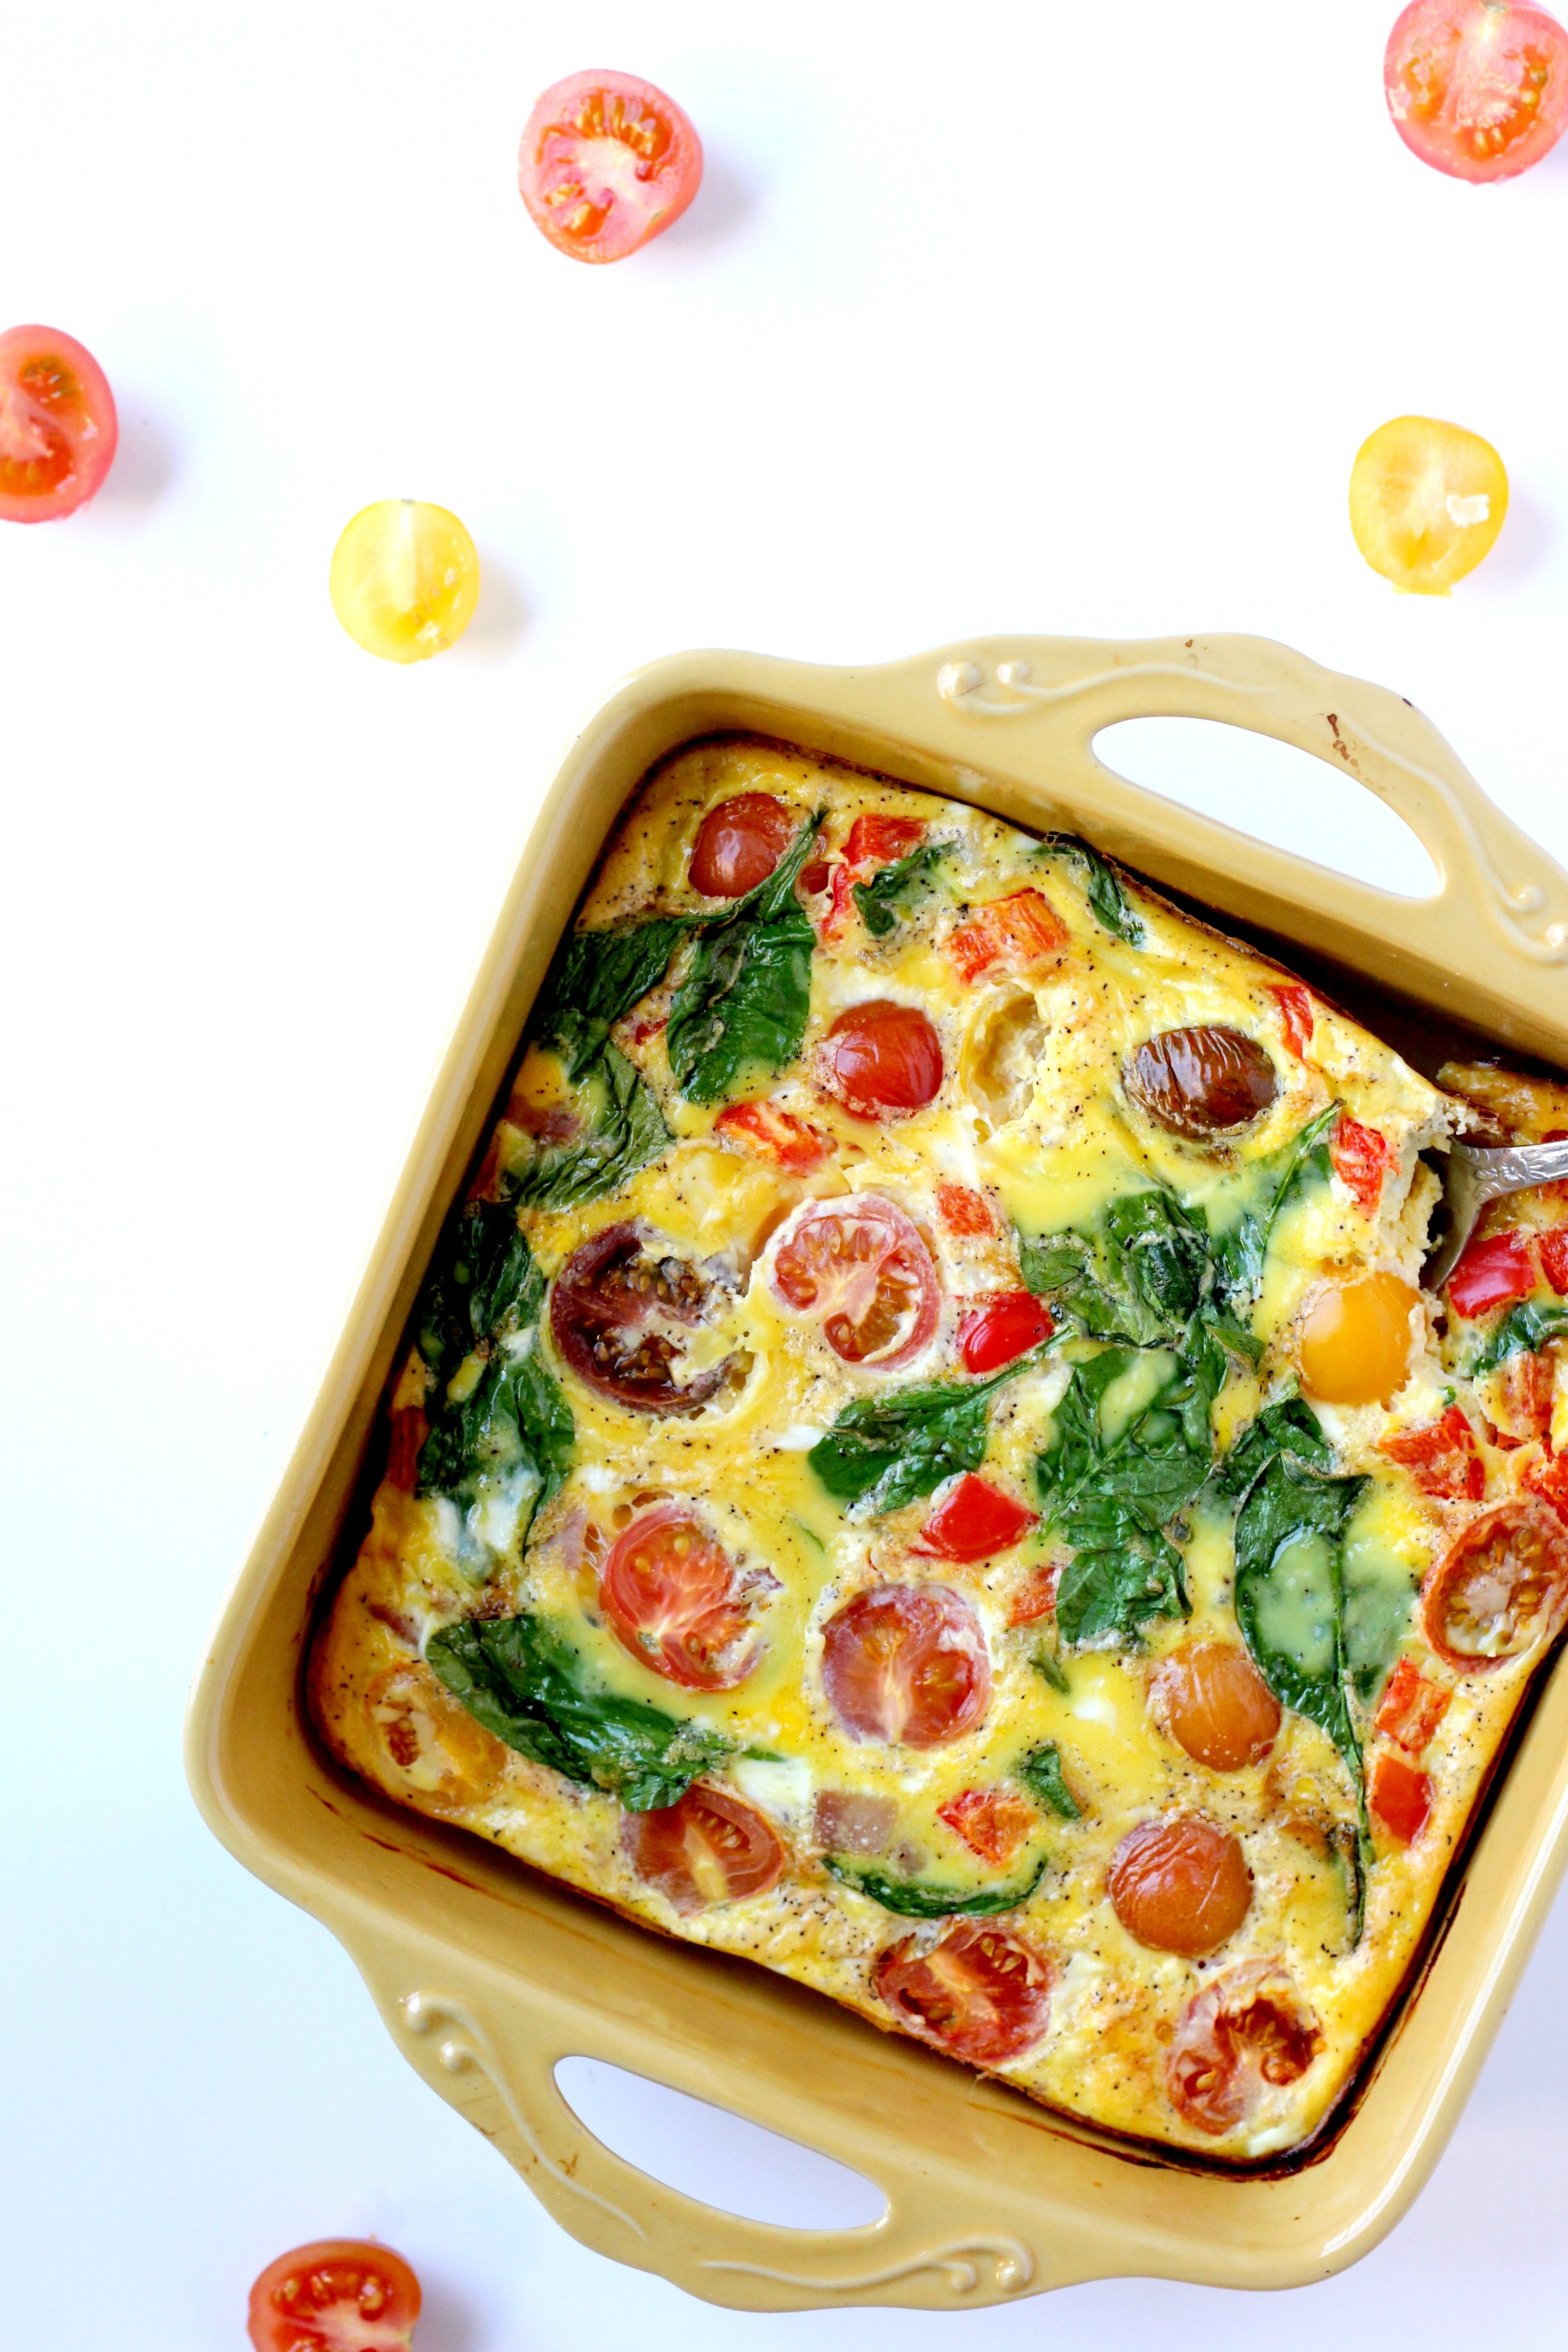 Dairy Free Frittata with Heirloom Tomatoes by Bravo for Paleo